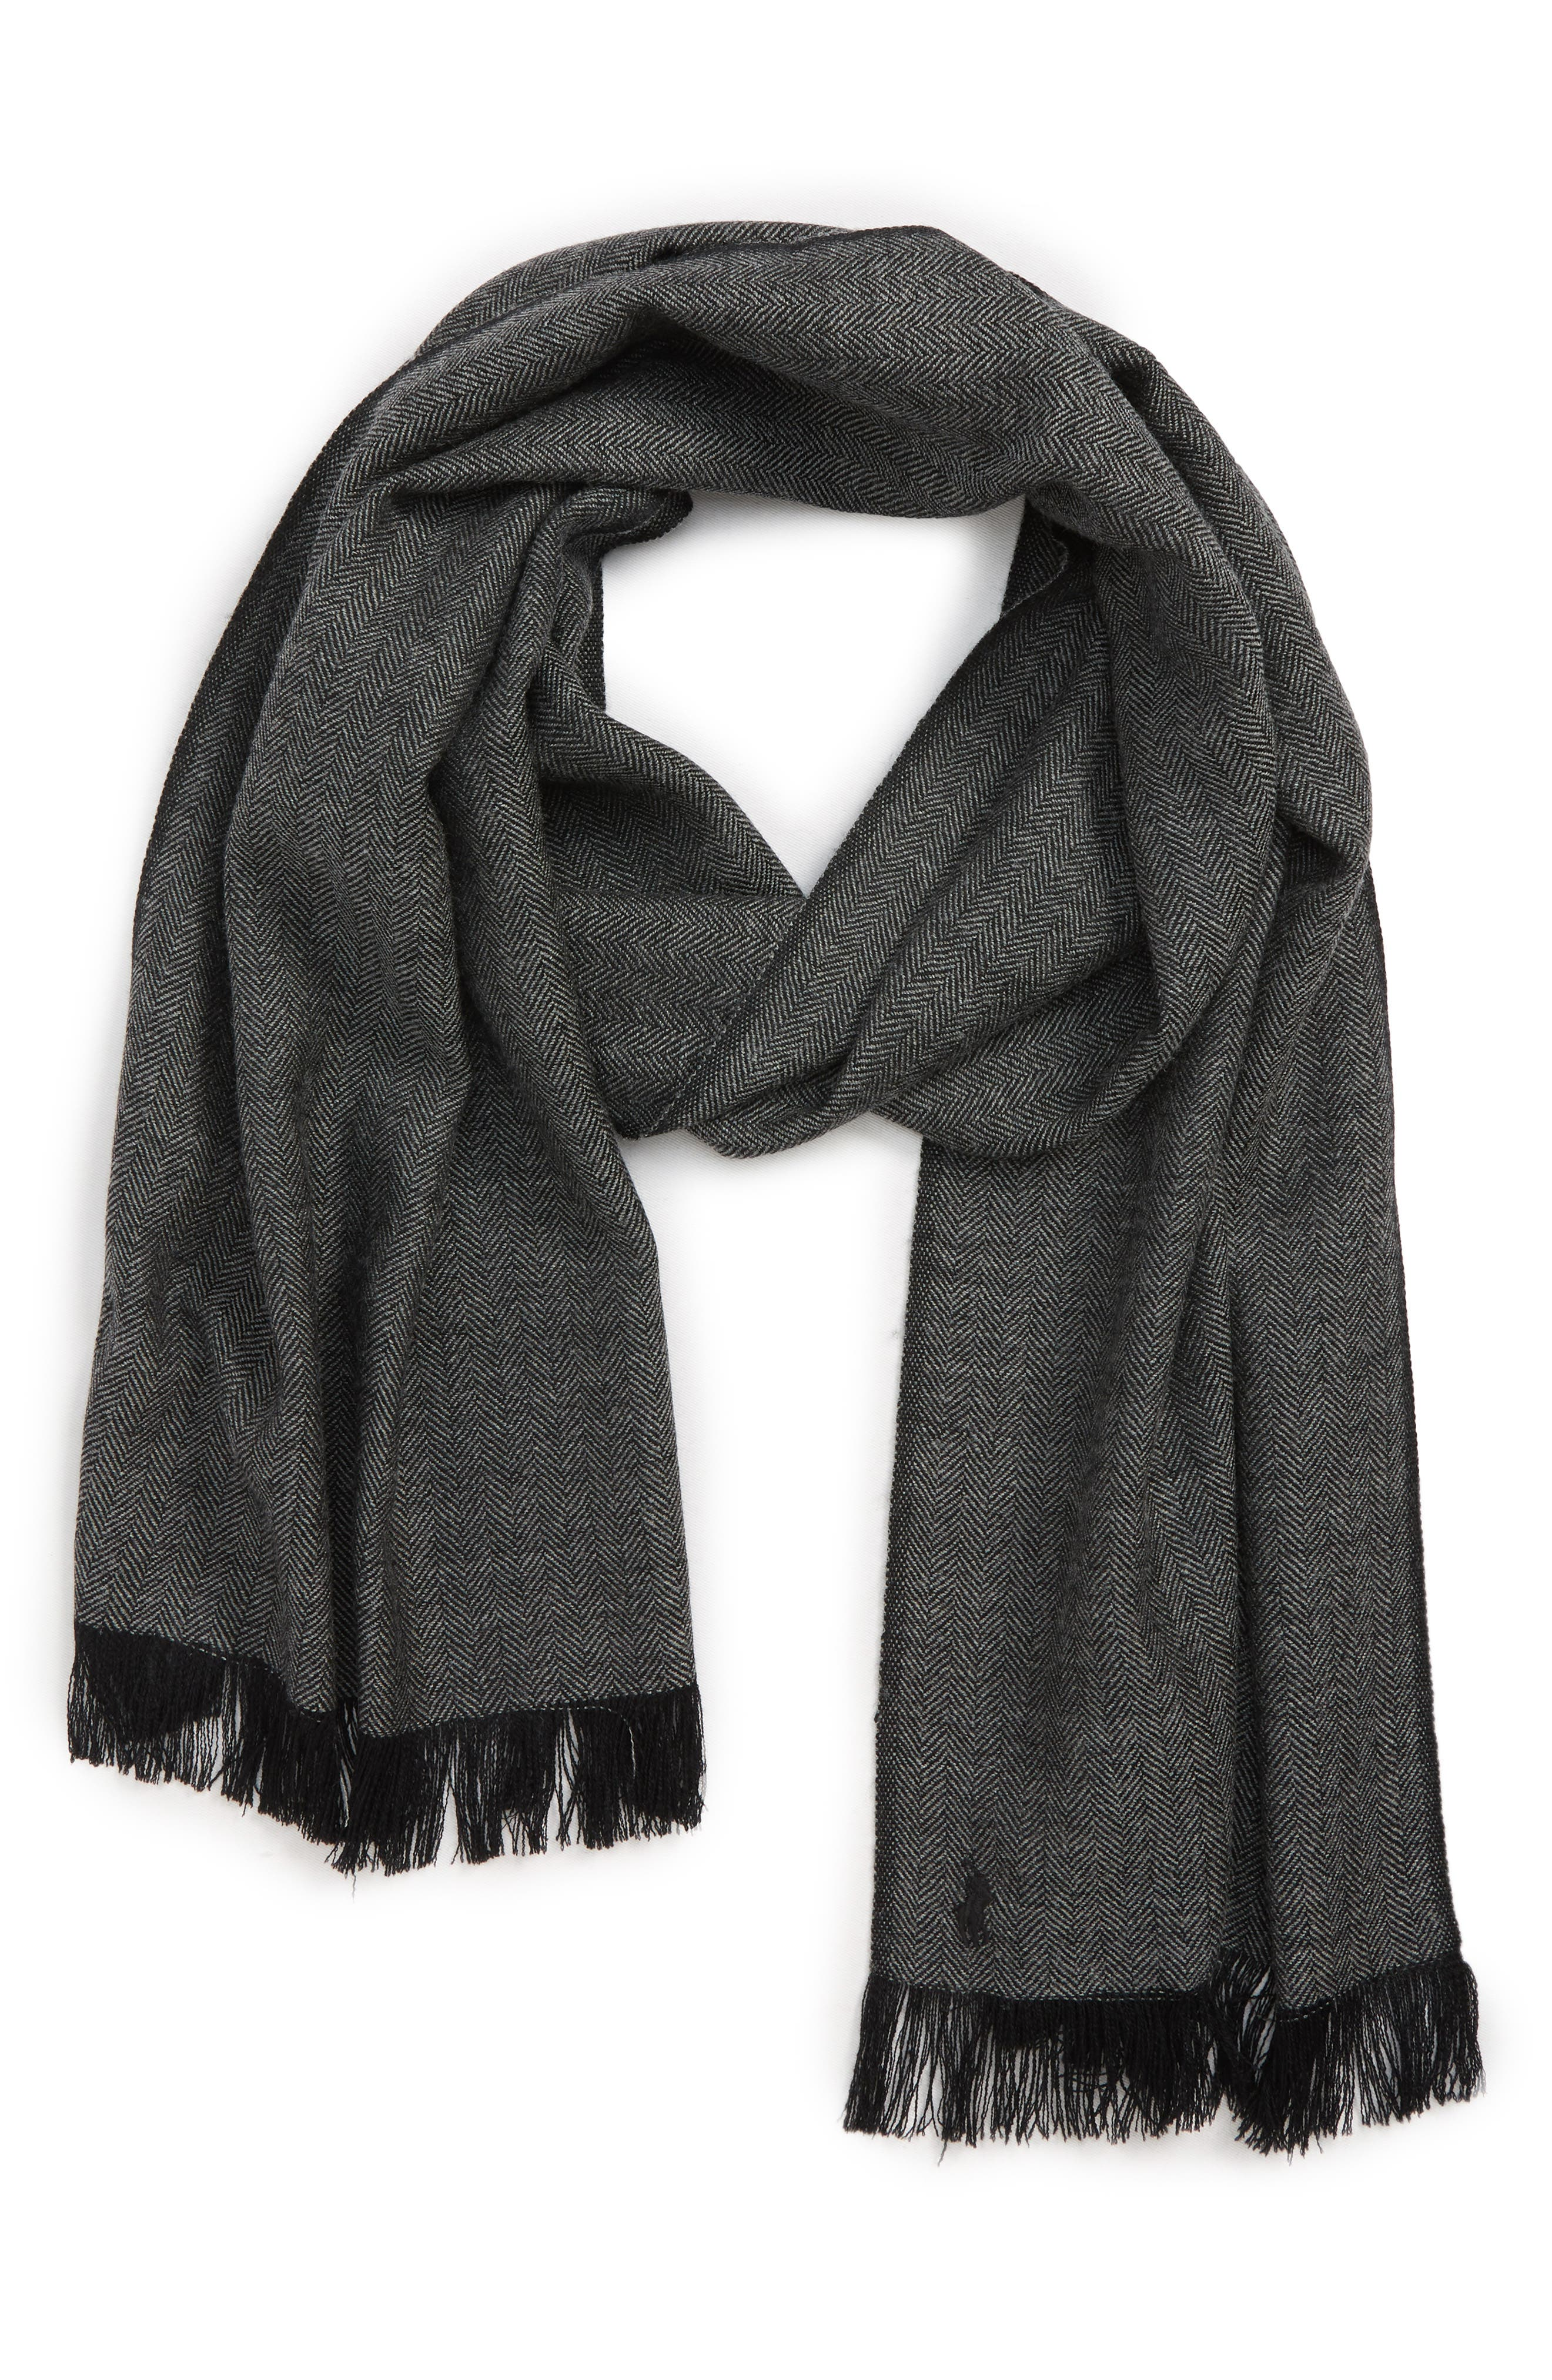 Patterned Merino Wool Scarf,                         Main,                         color, CHARCOAL/ BLACK